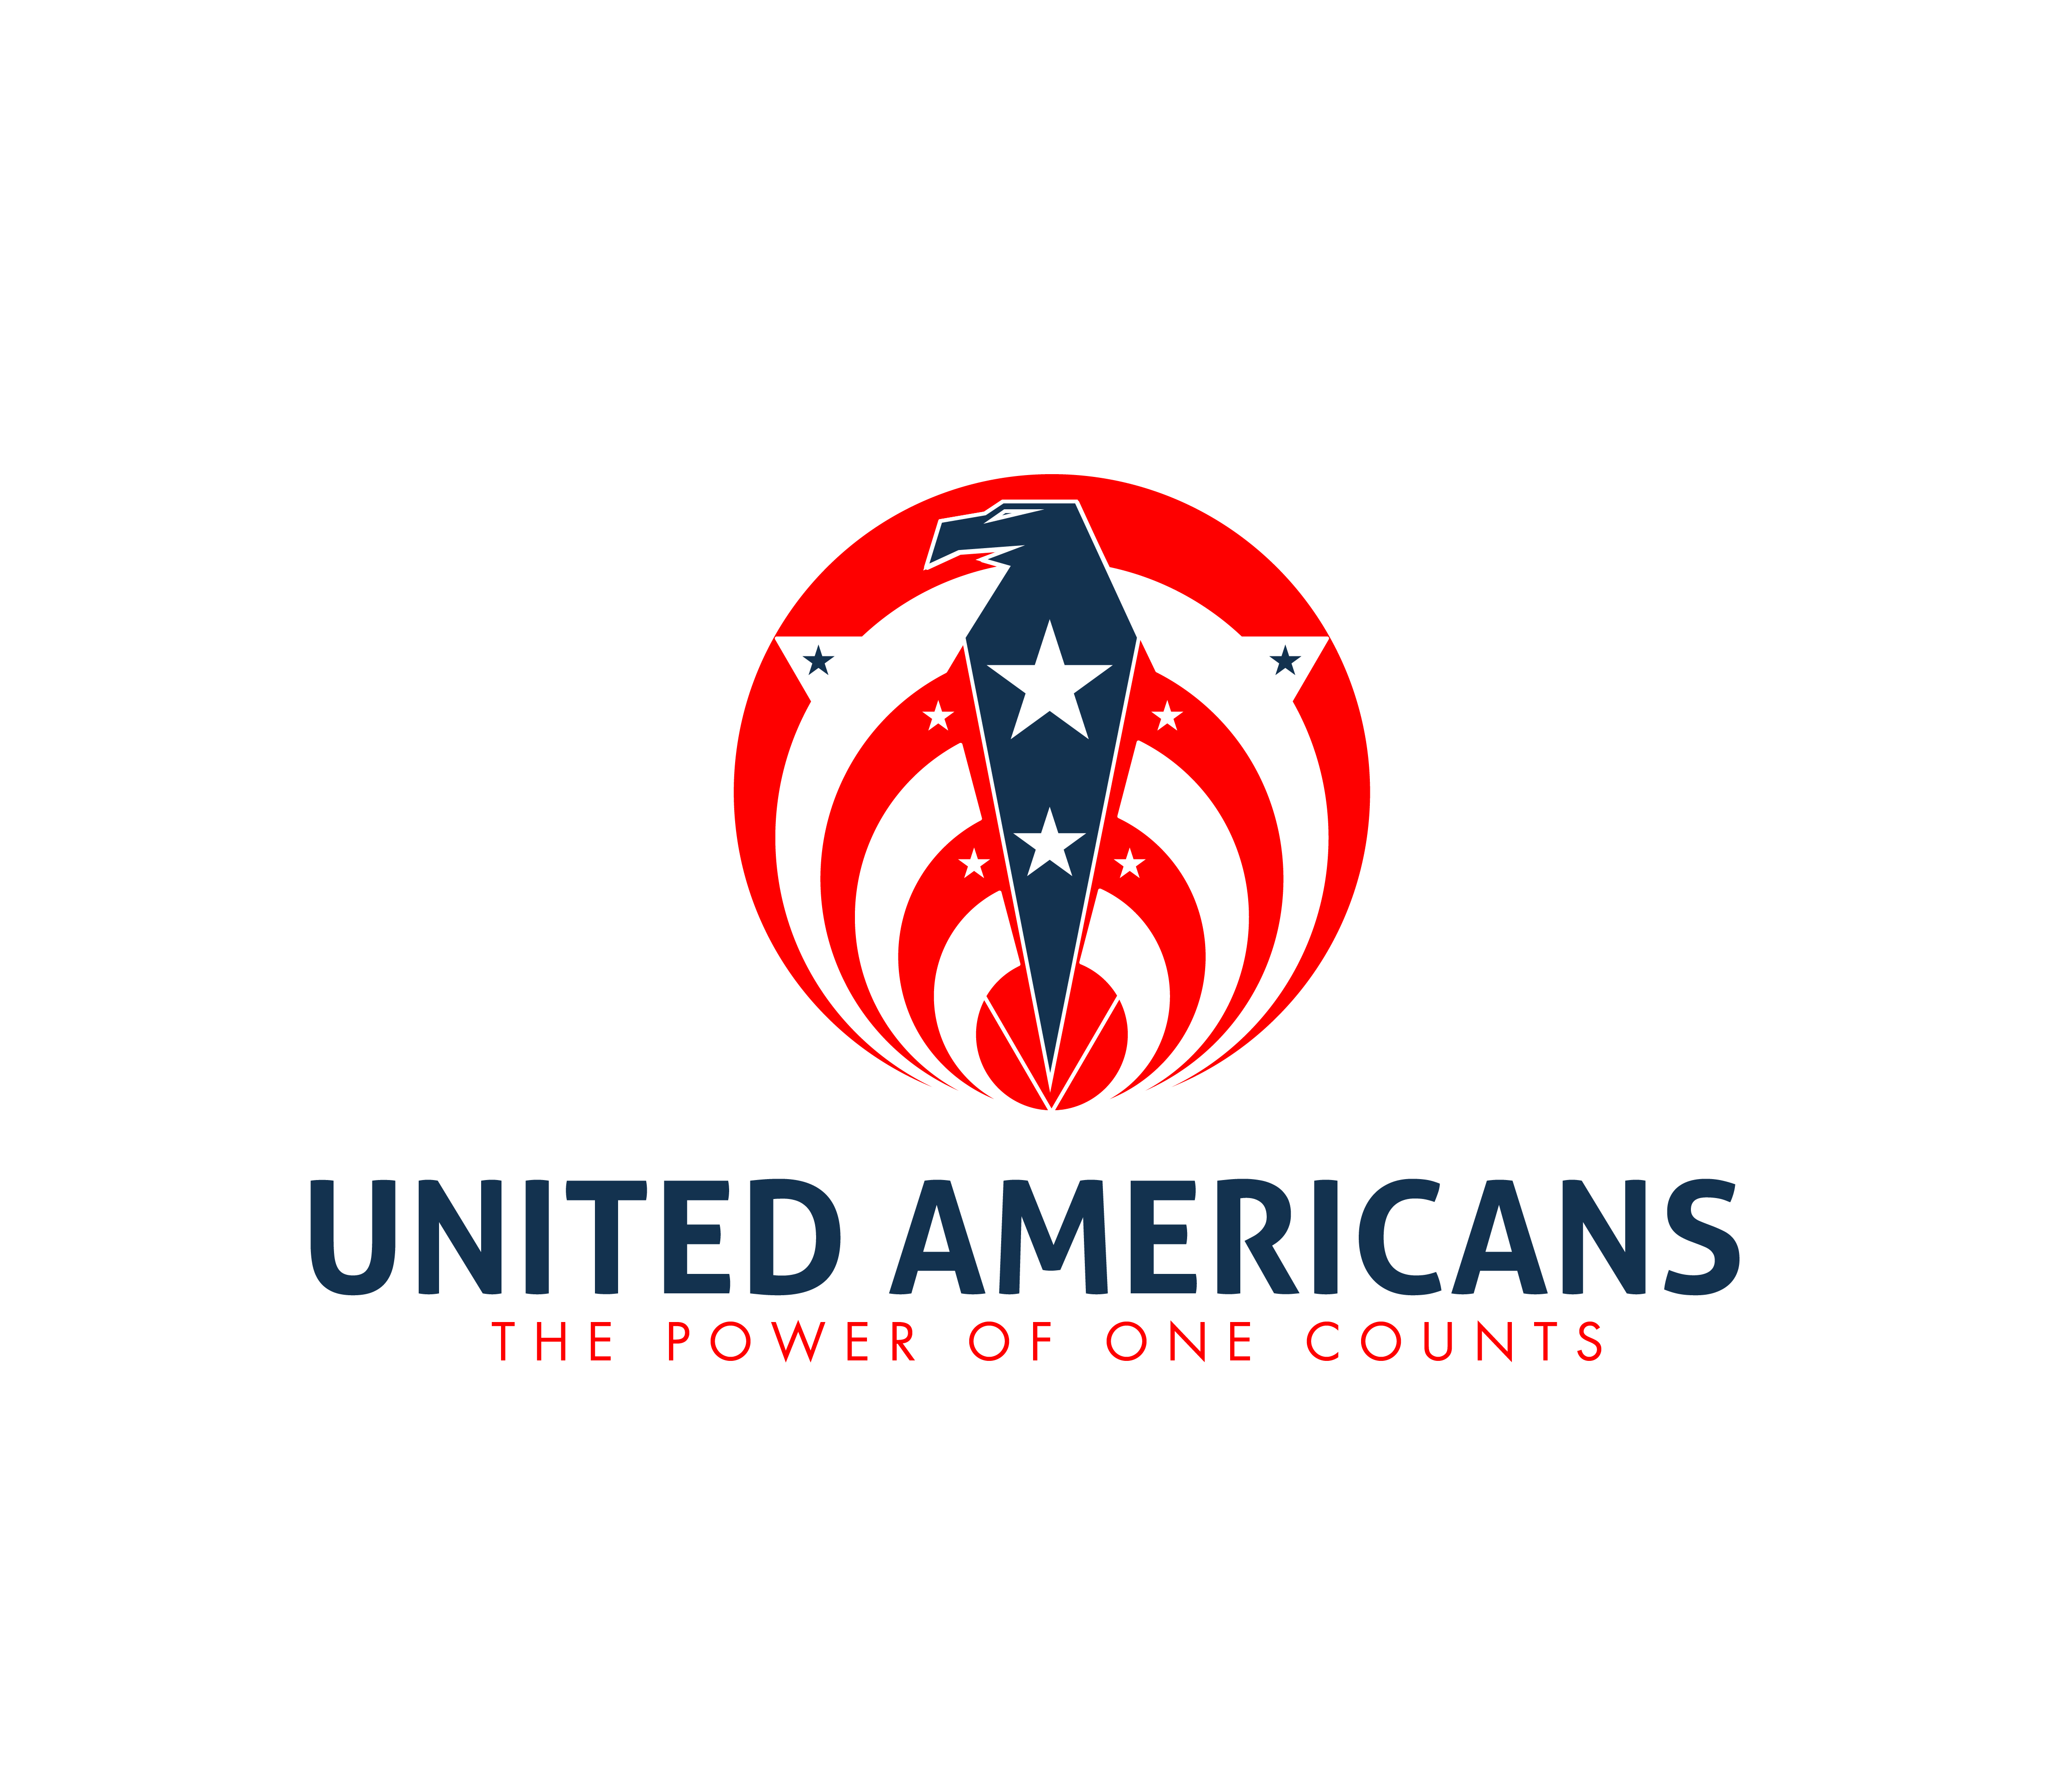 Logo Design by 3draw - Entry No. 167 in the Logo Design Contest Creative Logo Design for United Americans.